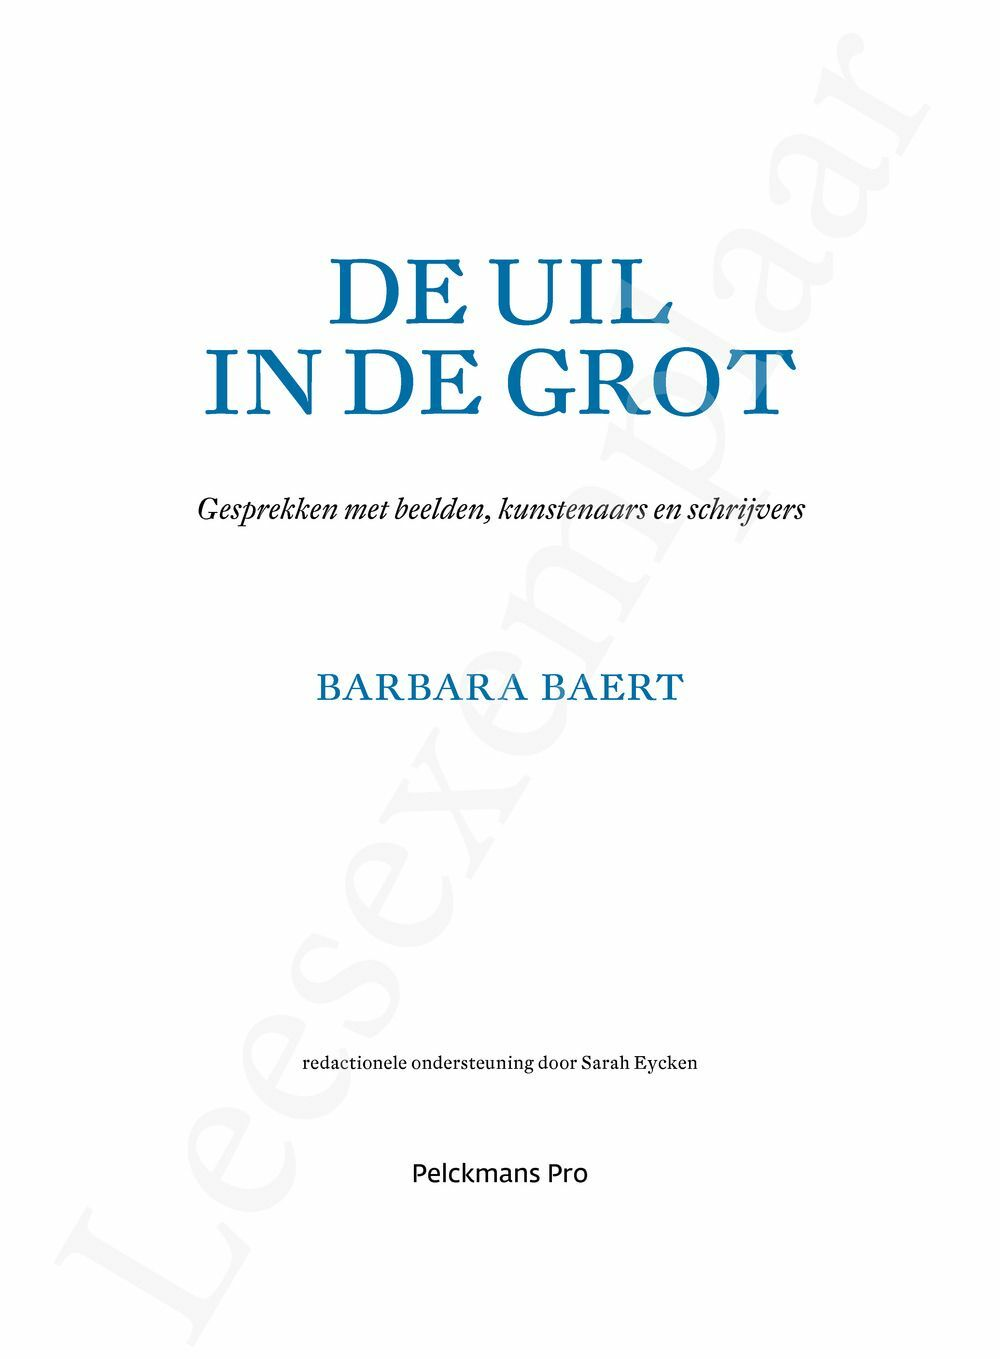 Preview: De uil in de grot